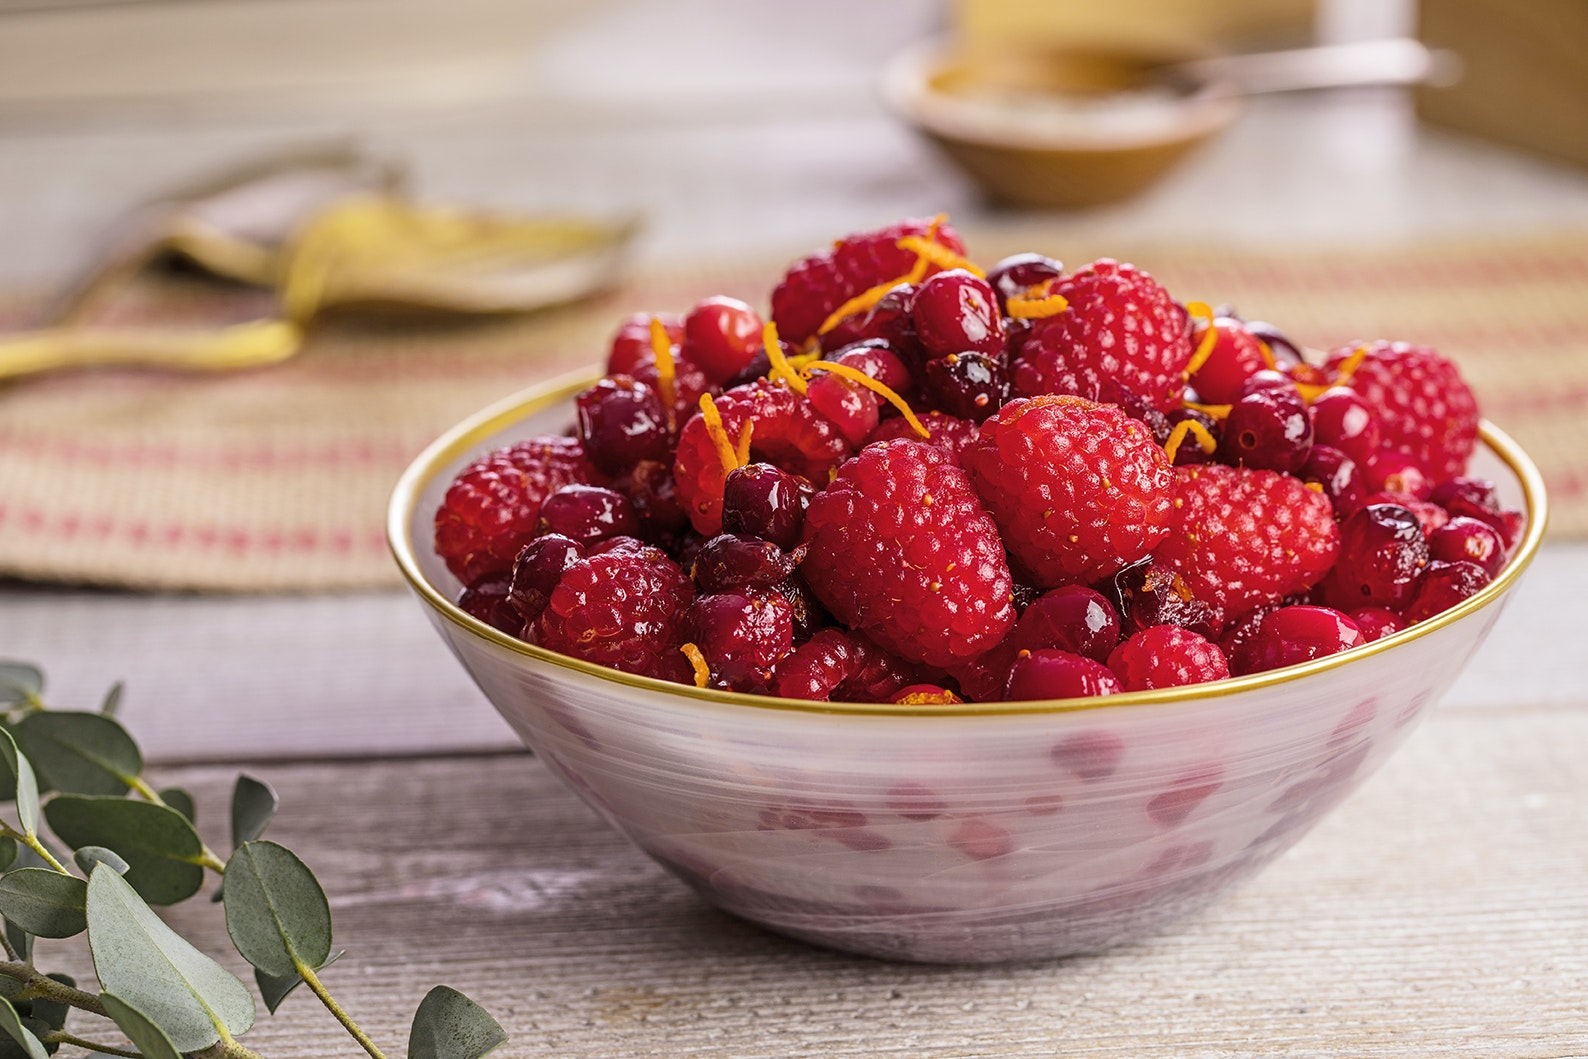 A bowl of cranberry and raspberry sauce